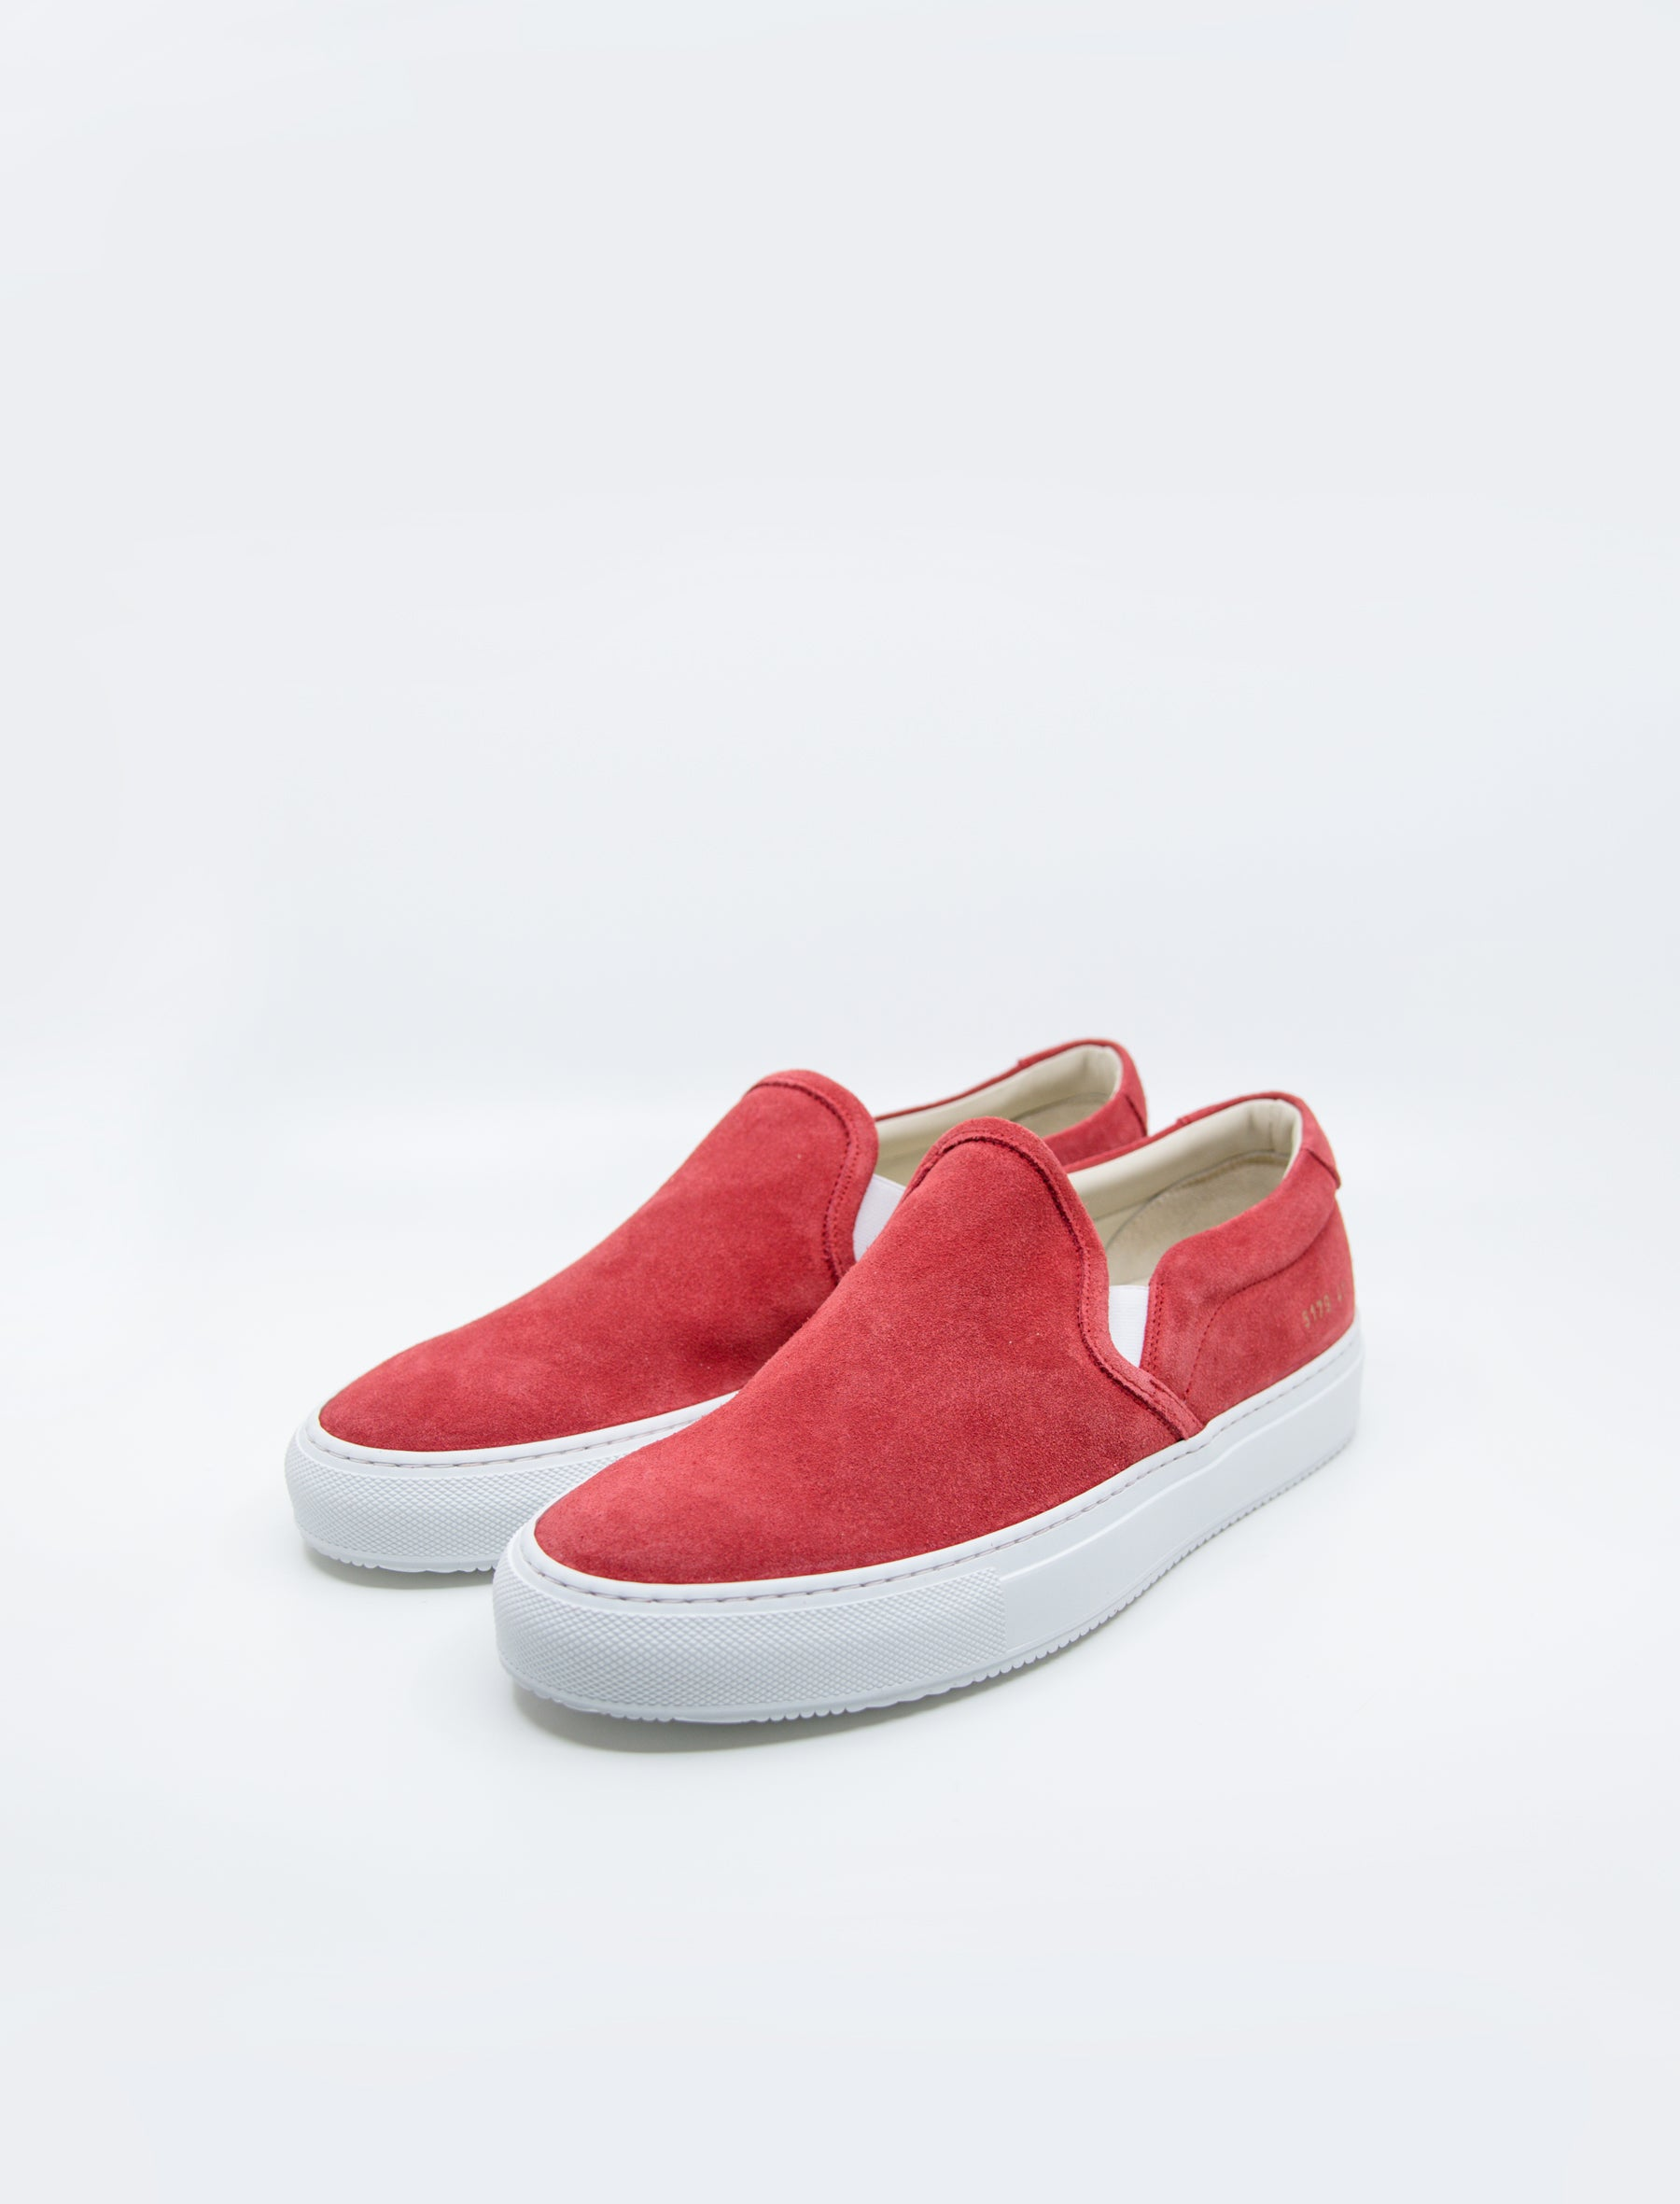 8894d8a328f0 Common Projects Slip-On Suede Red ...